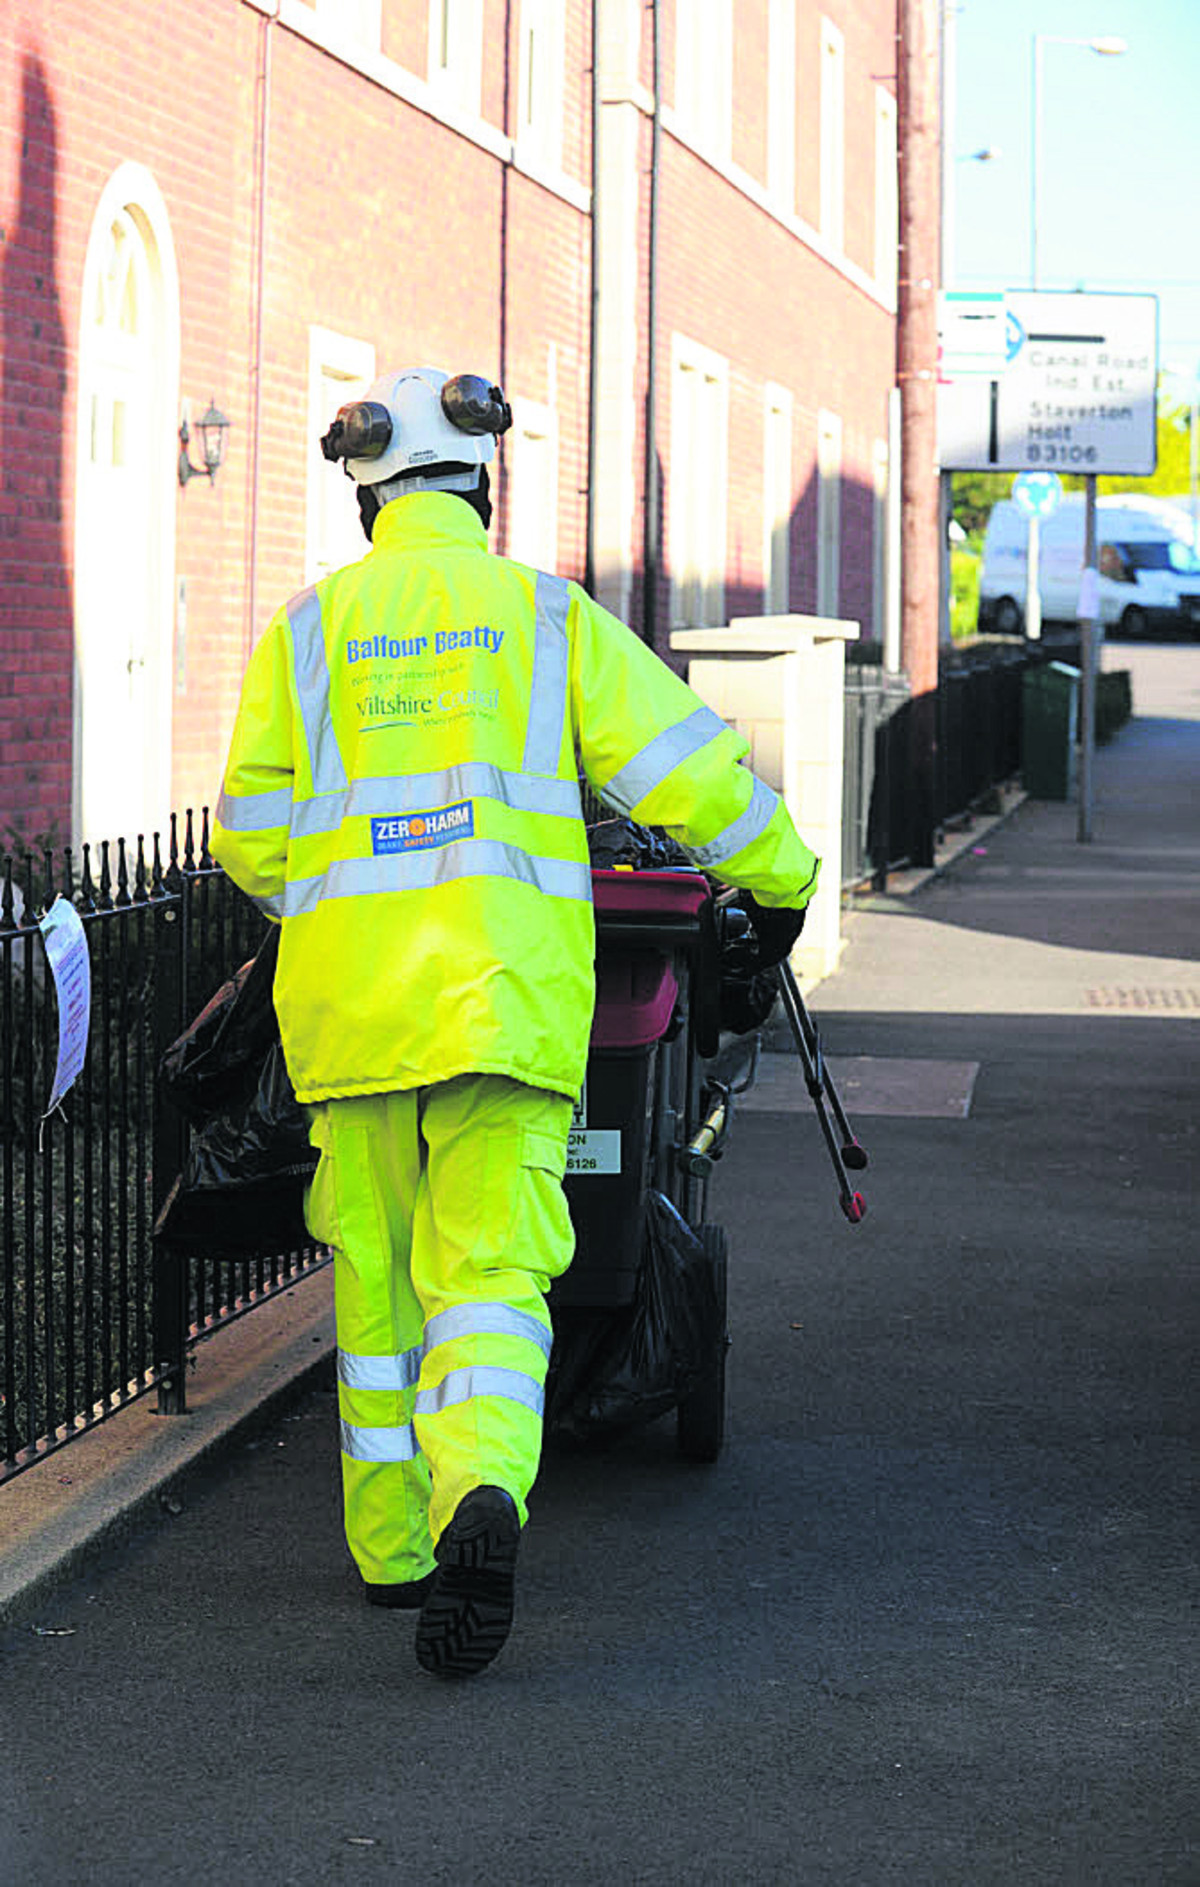 Road cleaning team to be cut from 18 to 10 as part of Wiltshire Council's £1m savings